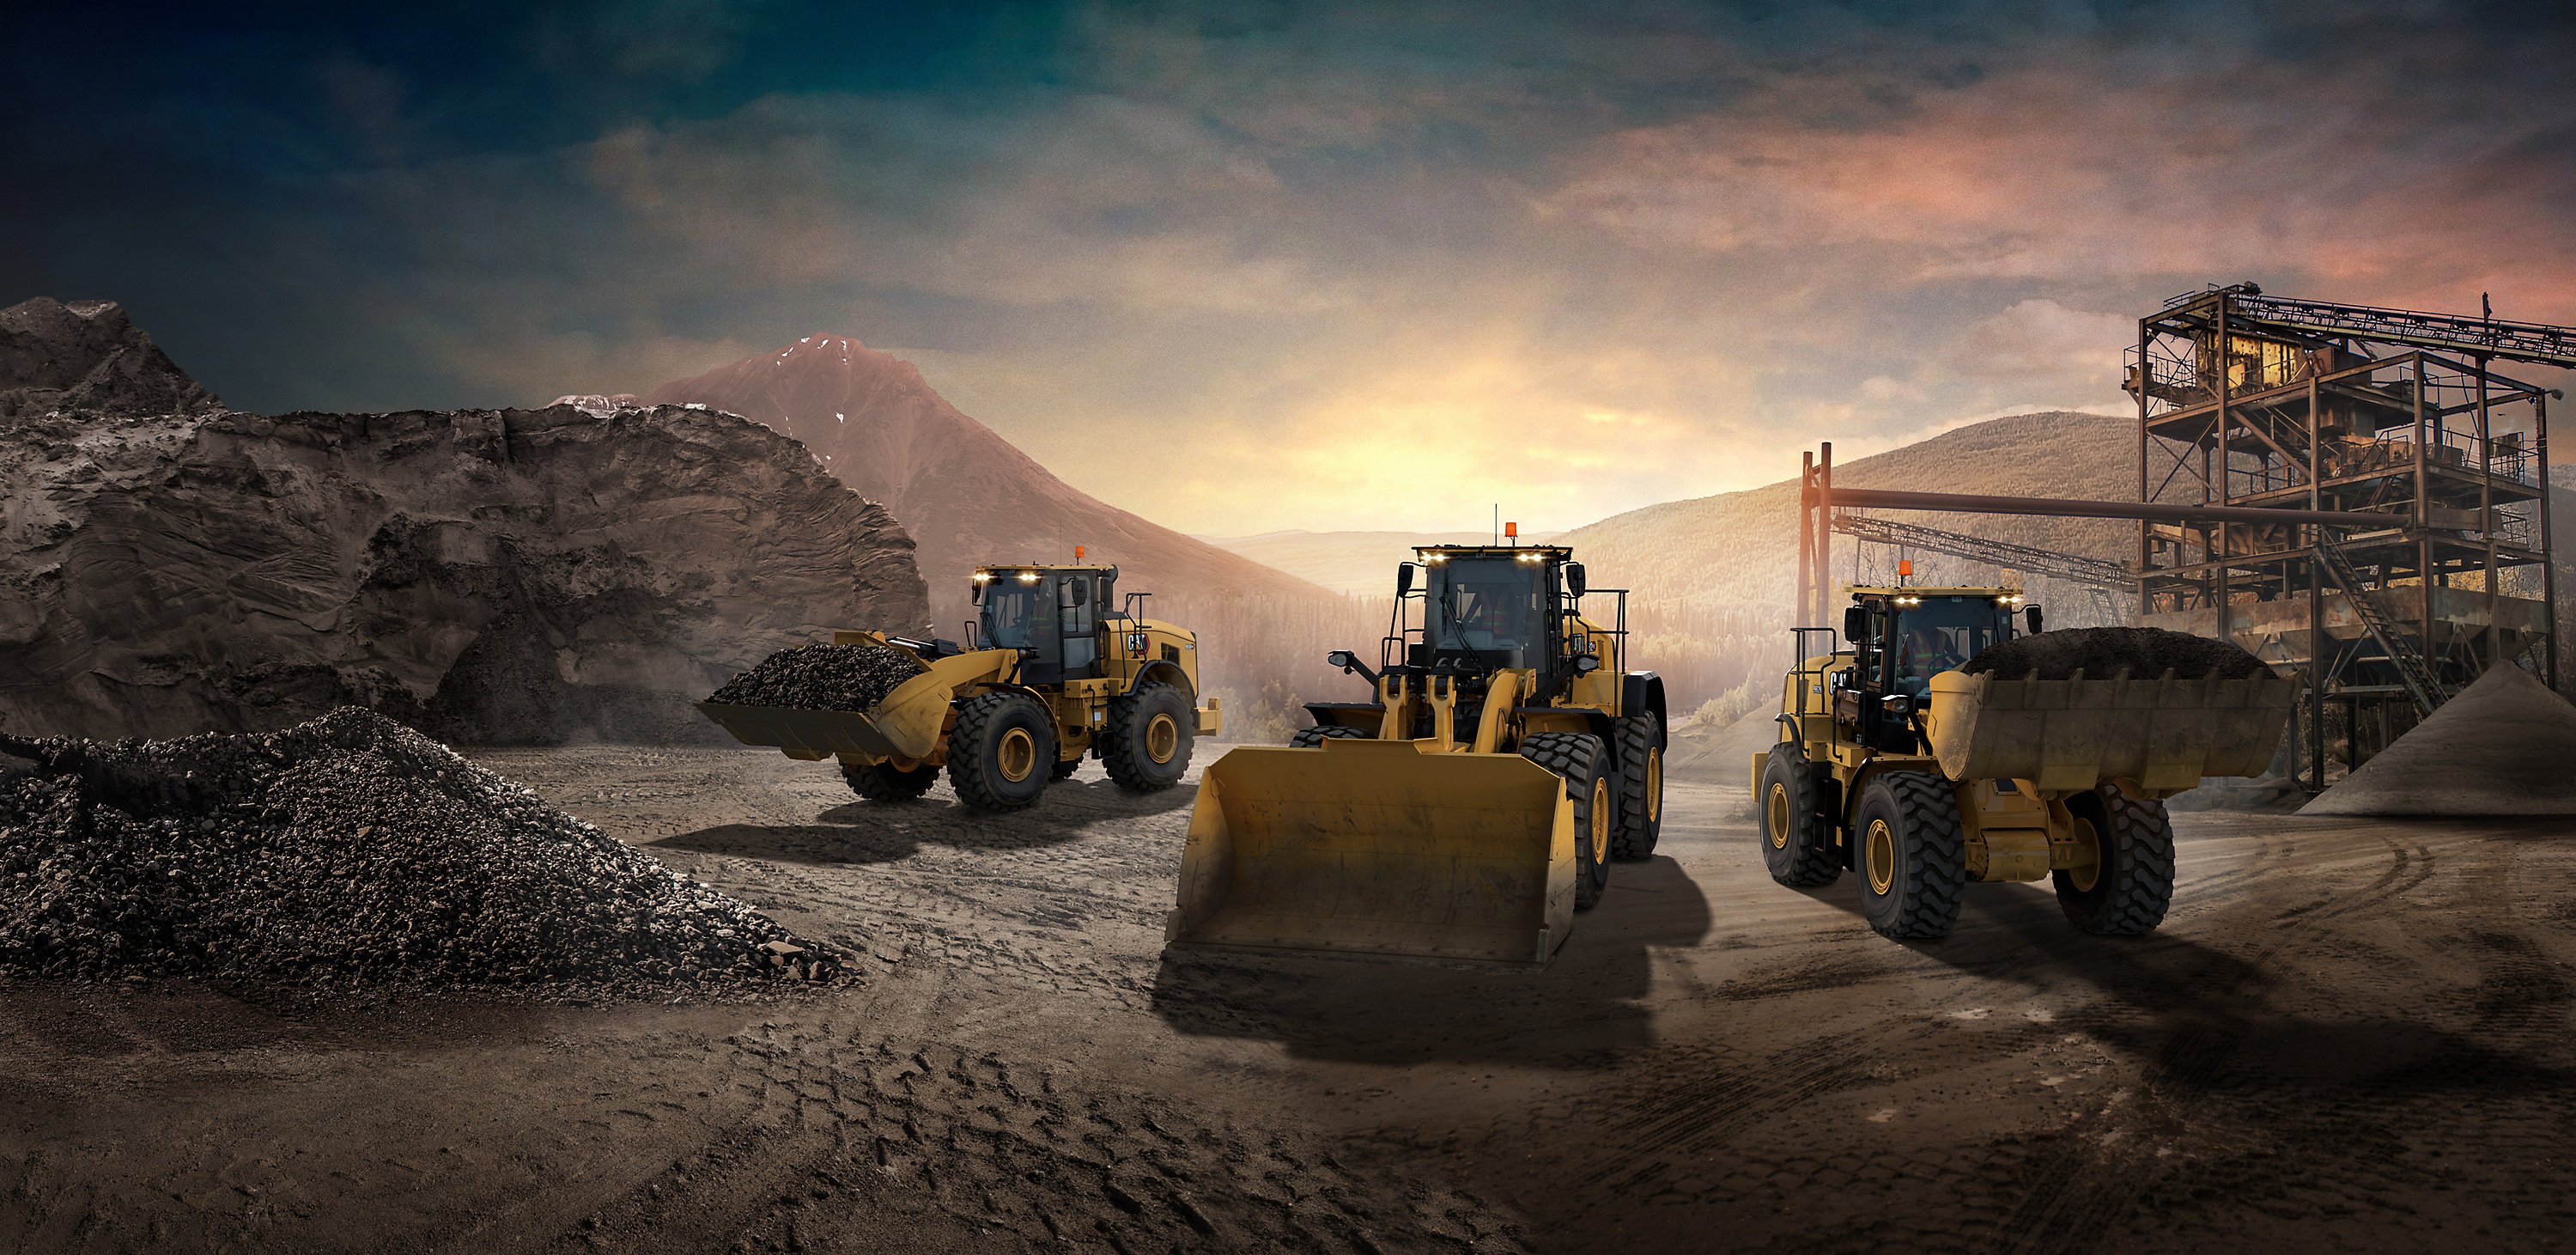 Wheel Loader, Skid Steer and Articulated Truck working on jobsite